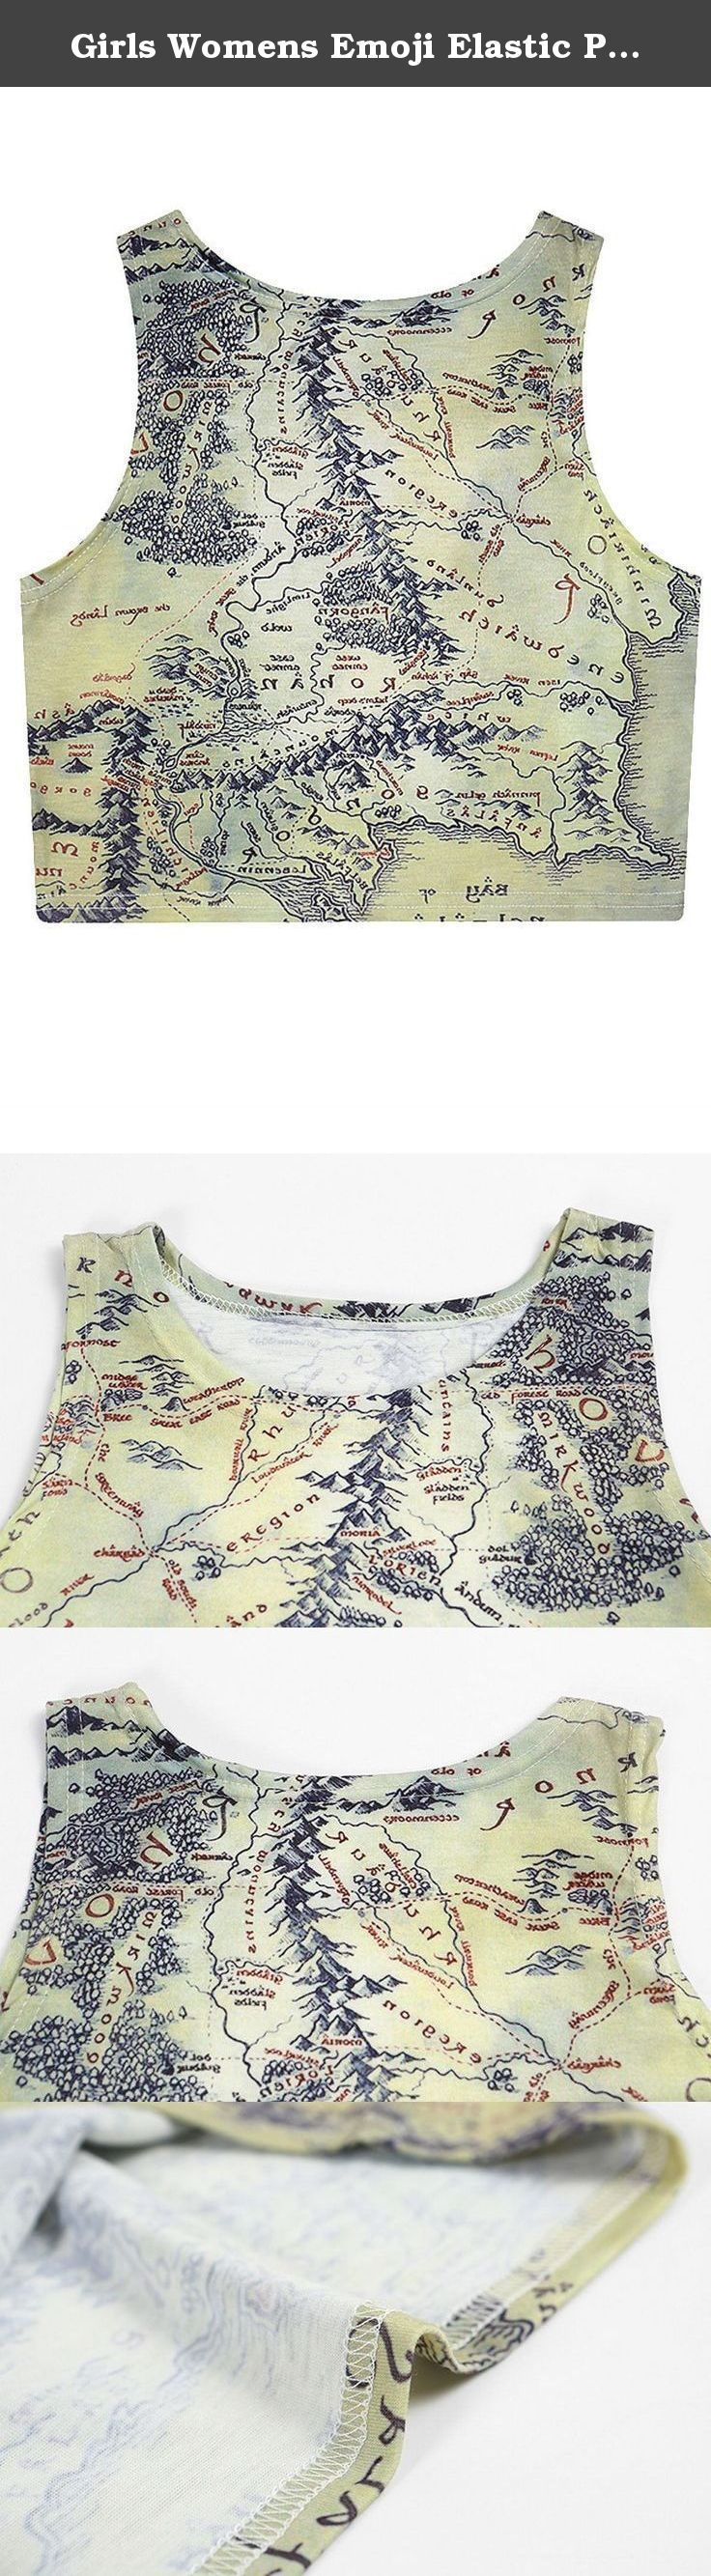 Girls Womens Emoji Elastic Printed Backless Camis Crop Top Map. Girls Teens Womens Summer Emoji Cute Printed Crop Vest Tank Tops High Quality, 100% Brand New Material:Polyester,Spandex Size: One size fit US 0-6. Bust--27.5 inch ,Length--14.5 inch Gender: Women, Lady, Girl Clolthes Type: Halter neck Crop Tops Sleeve Type: Sleeveless Style: Sexy, Fashion, Cute Season: Summer Package Include: 1x top Only .